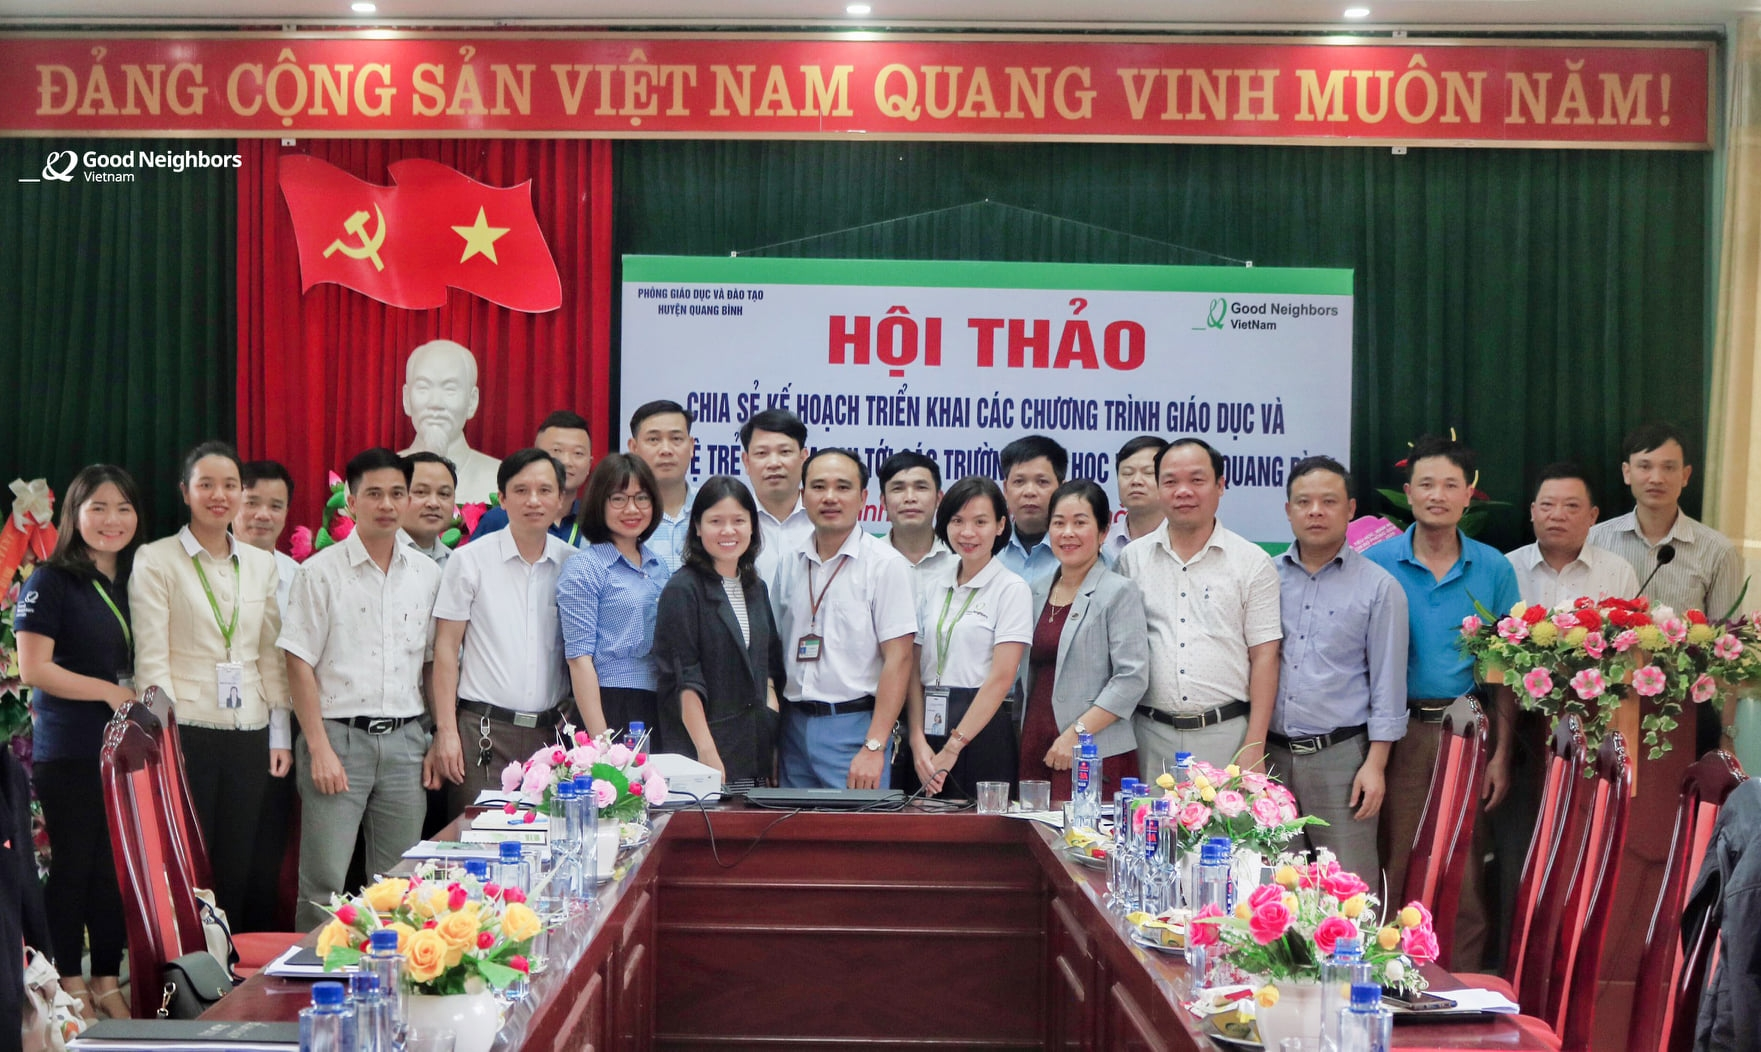 In 2021, gni plans to expand child education and protection program in ha giang province